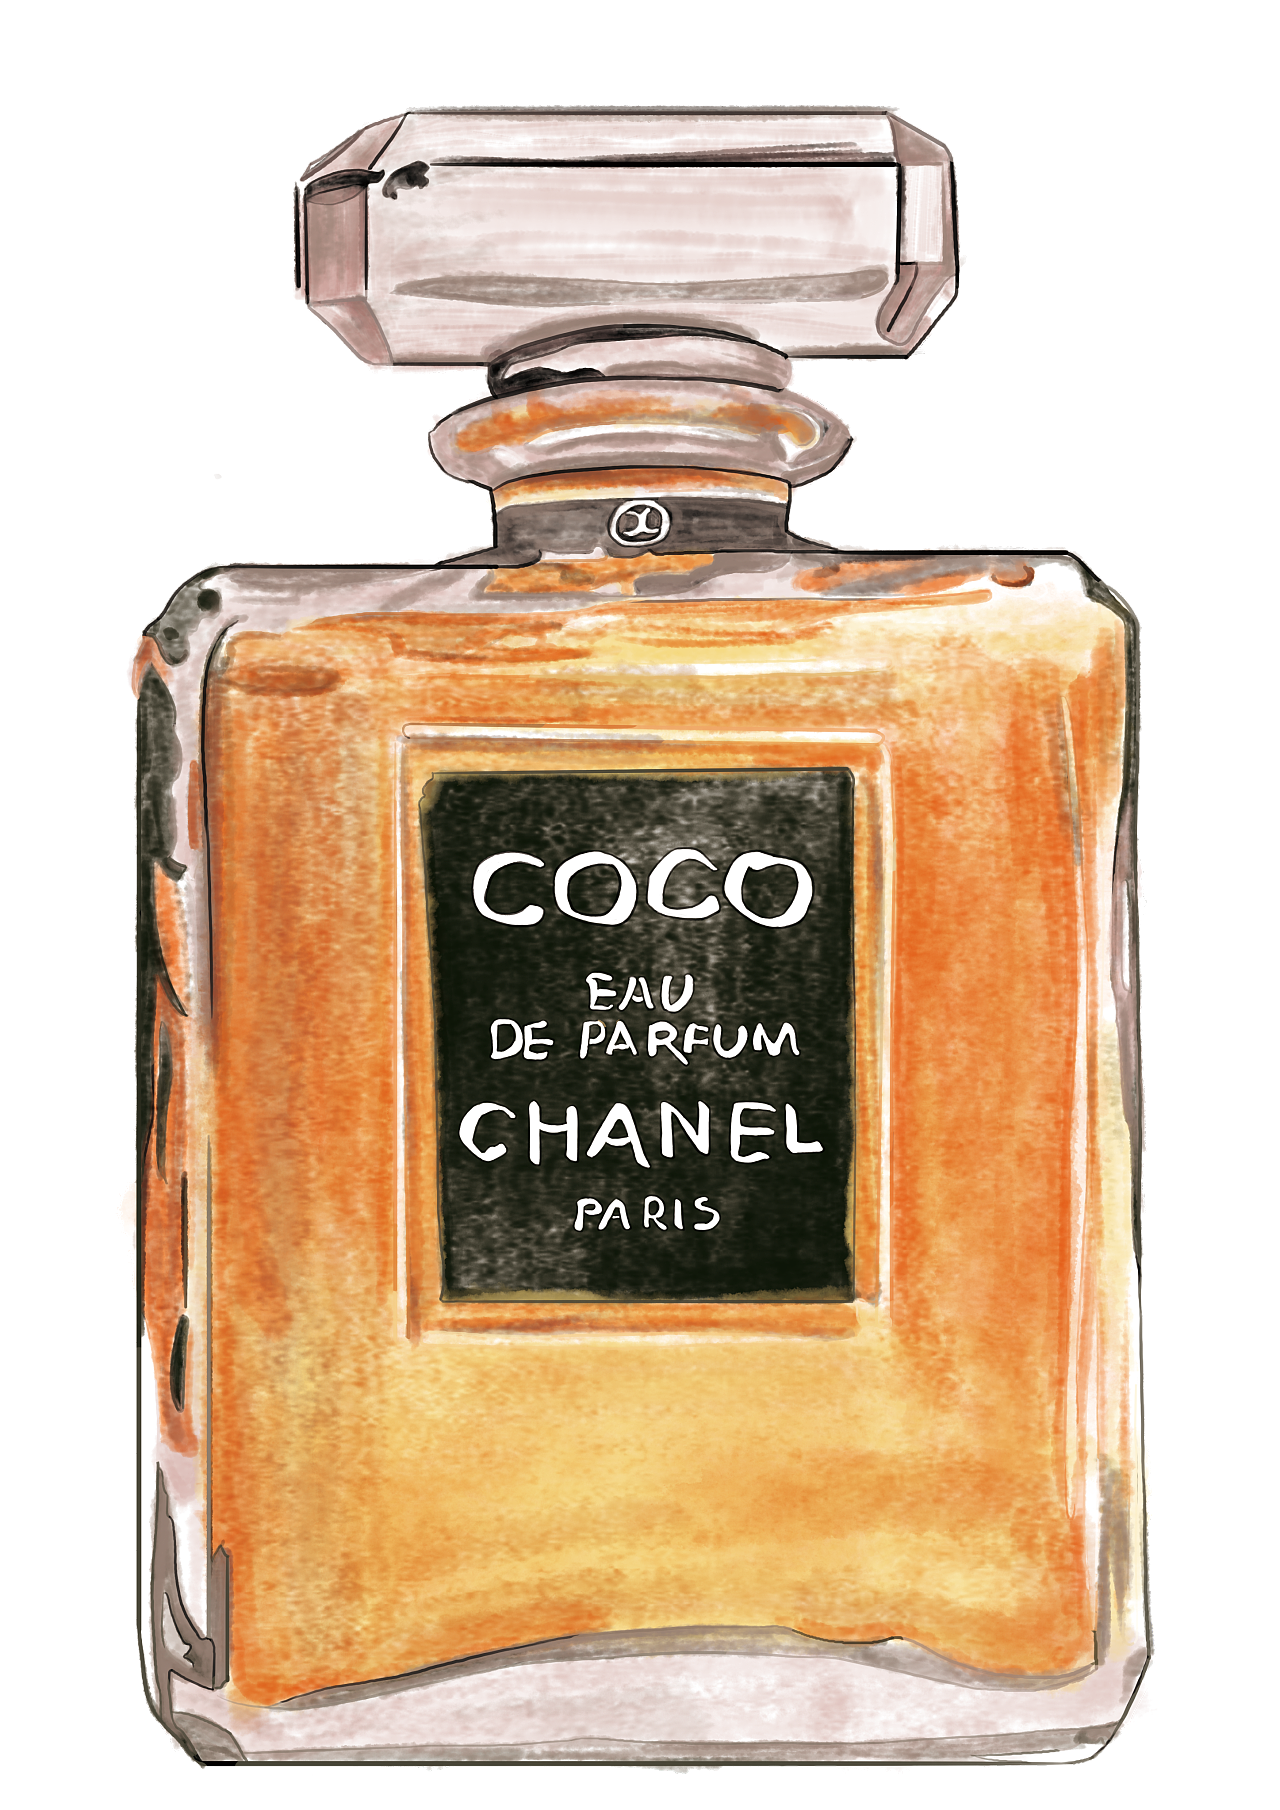 Ck One Glass Bottle Perfume Chanel PNG Image